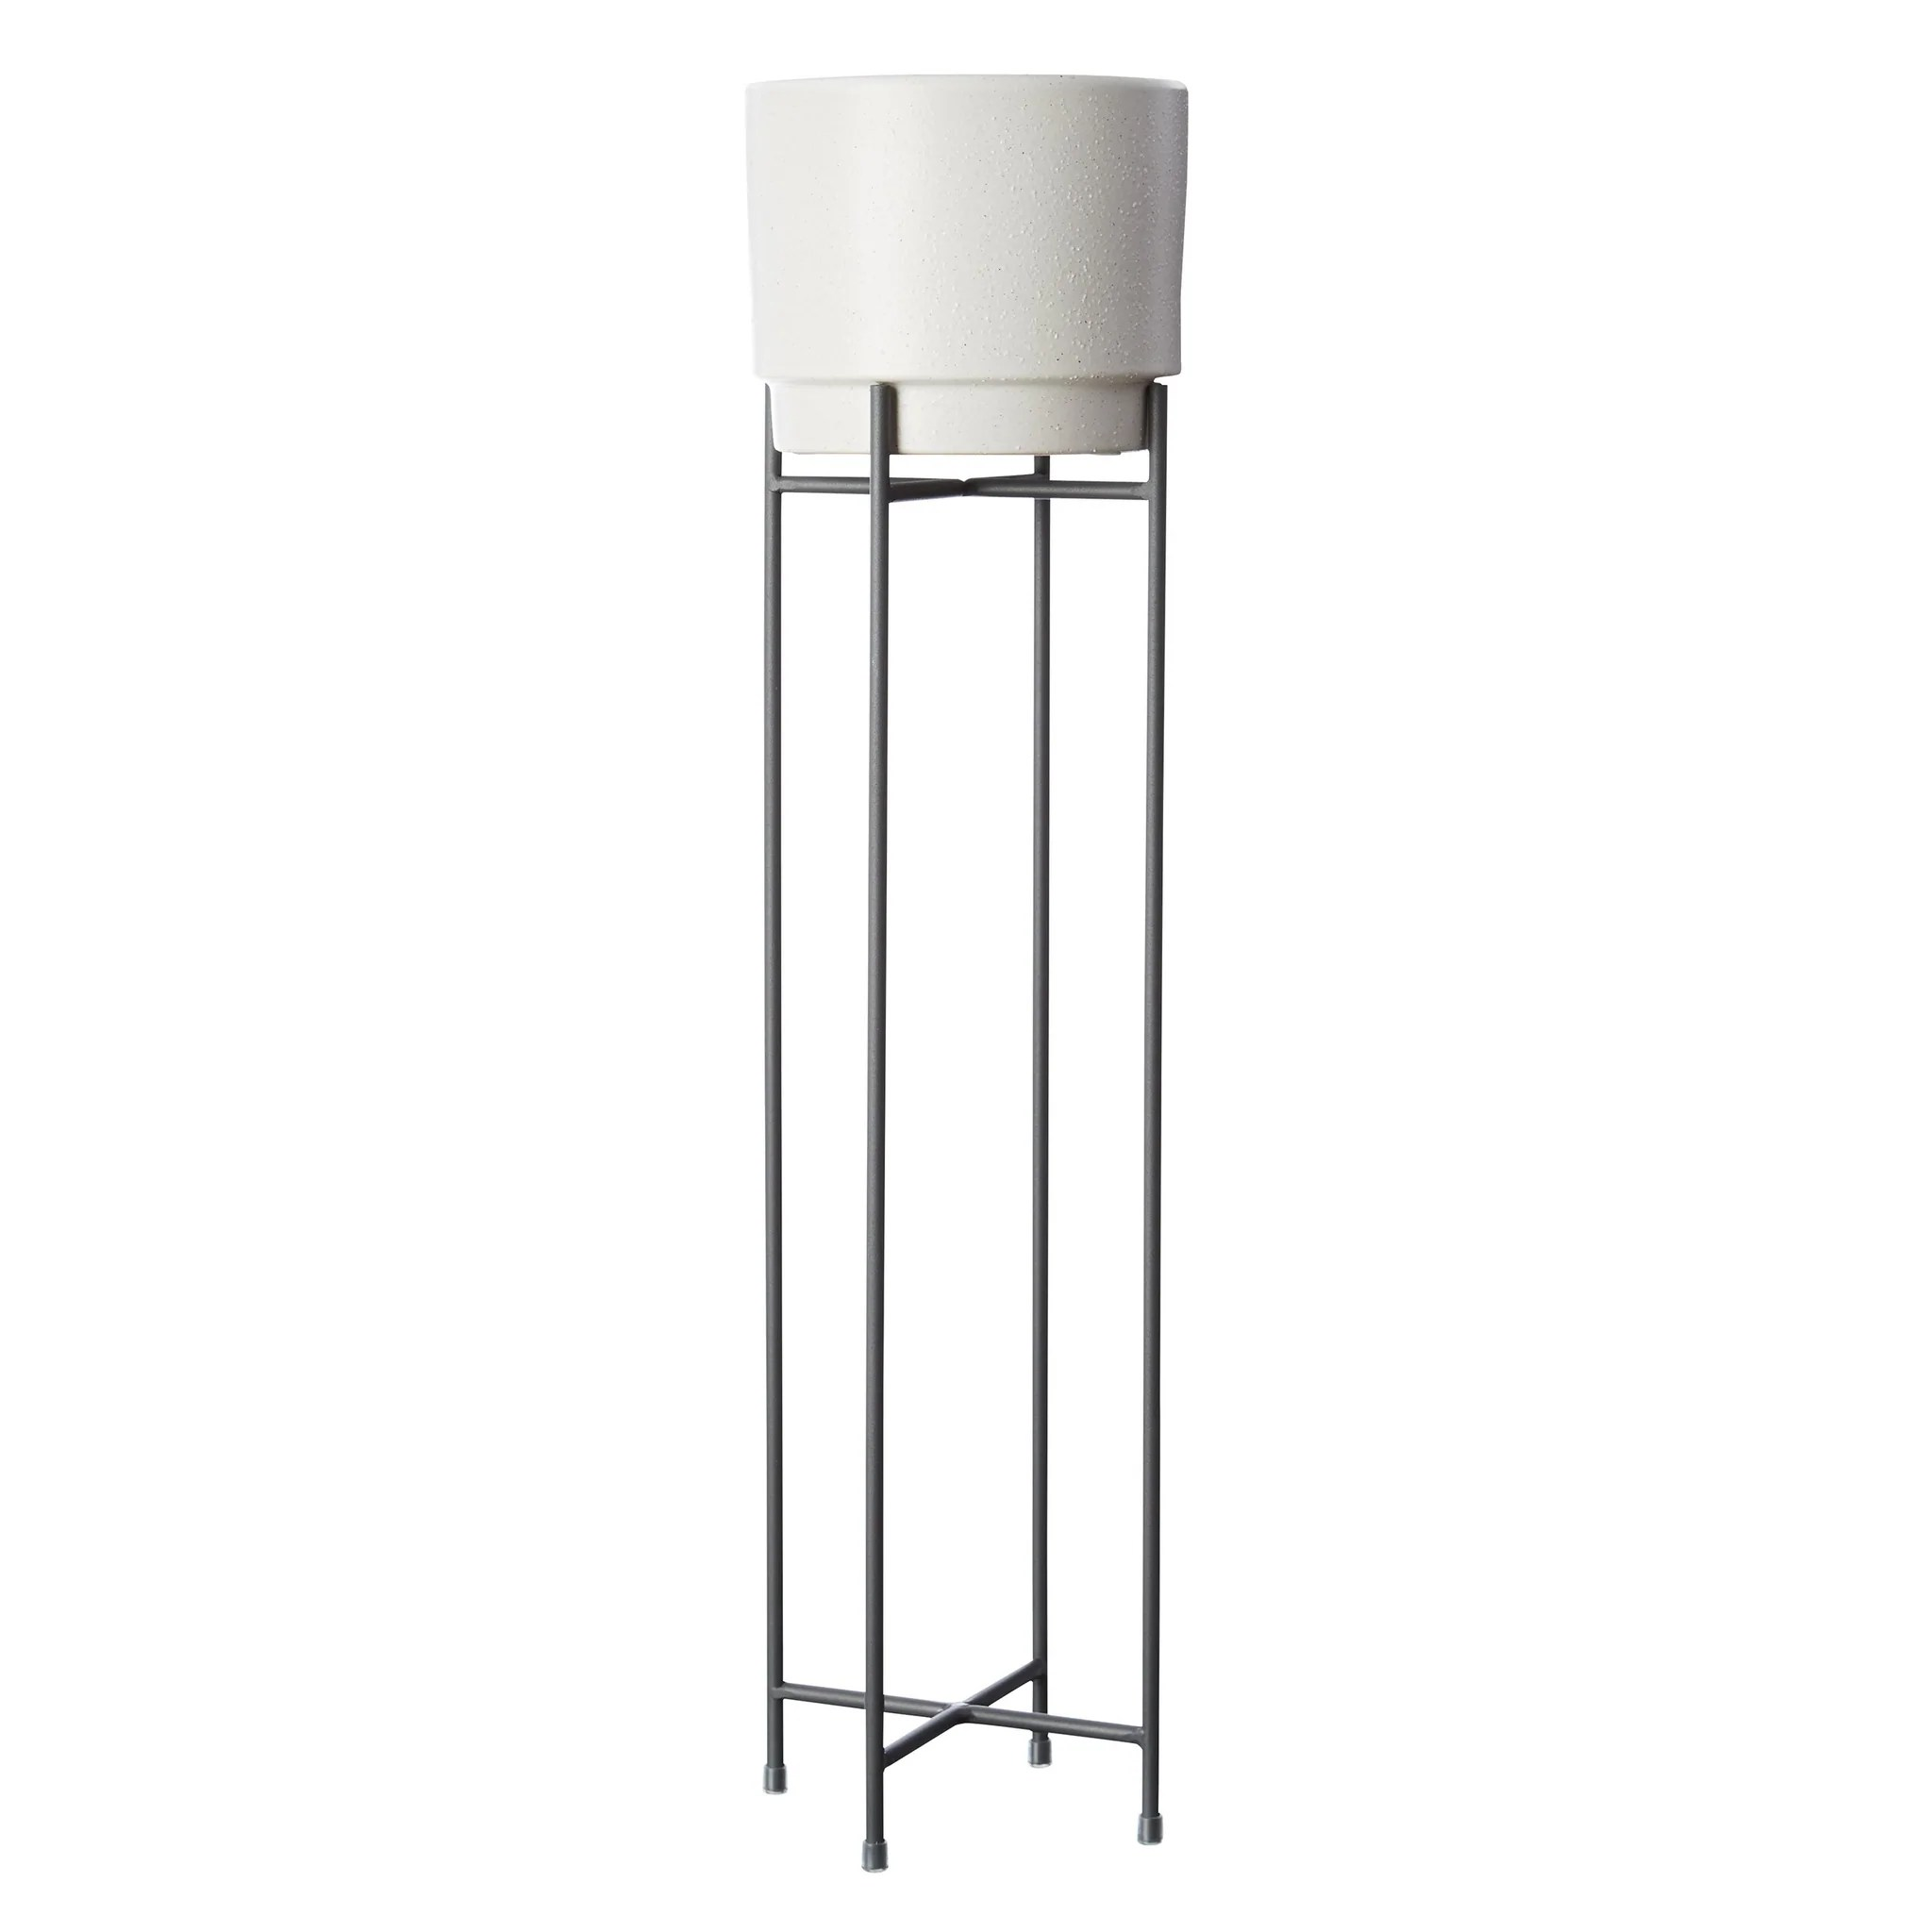 Fullsize Of Tall Plant Stands